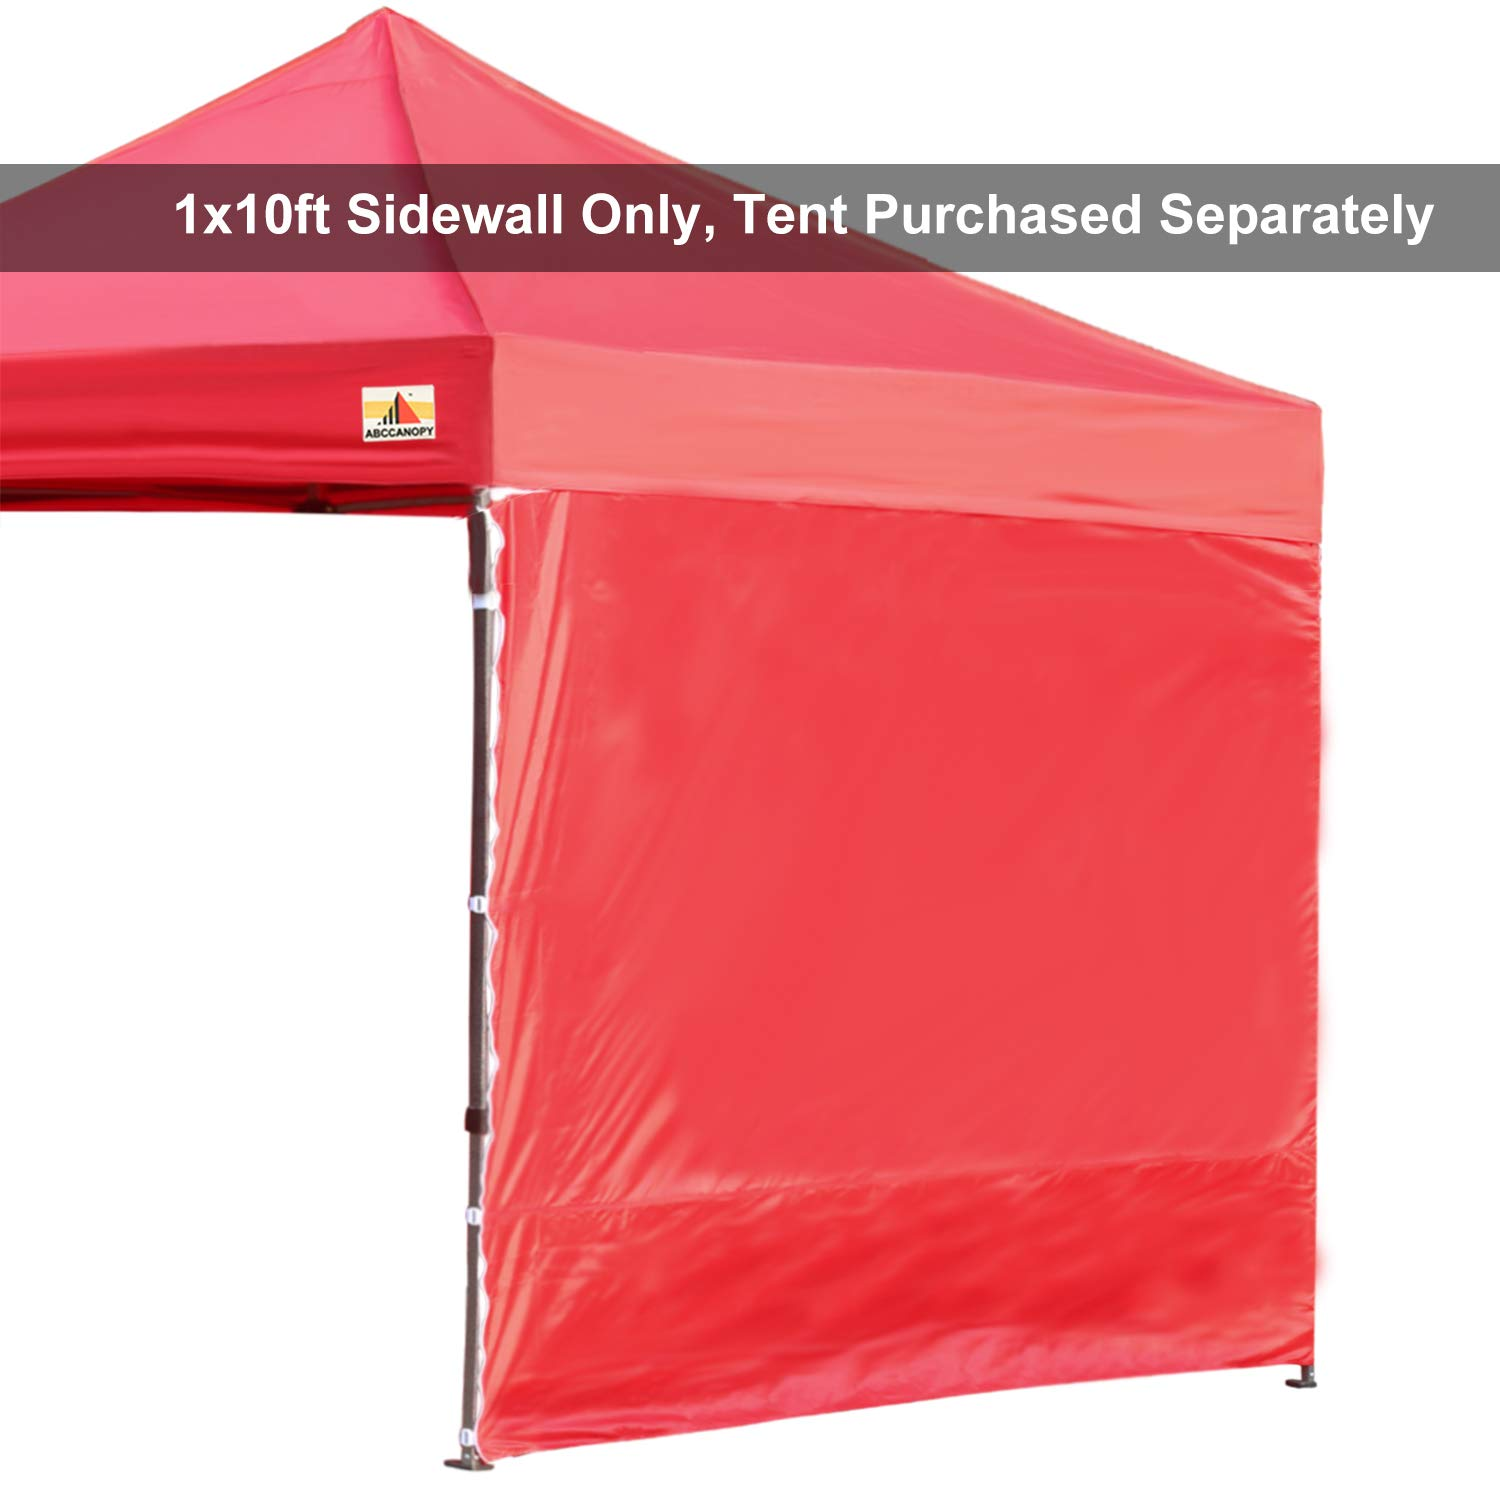 ABCCANOPY 15+Colors 10' Sun Wall for 10'x 10' Straight Leg pop up Canopy, 10' Sidewall kit (1 Panel) with Truss Straps (Red) by ABCCANOPY